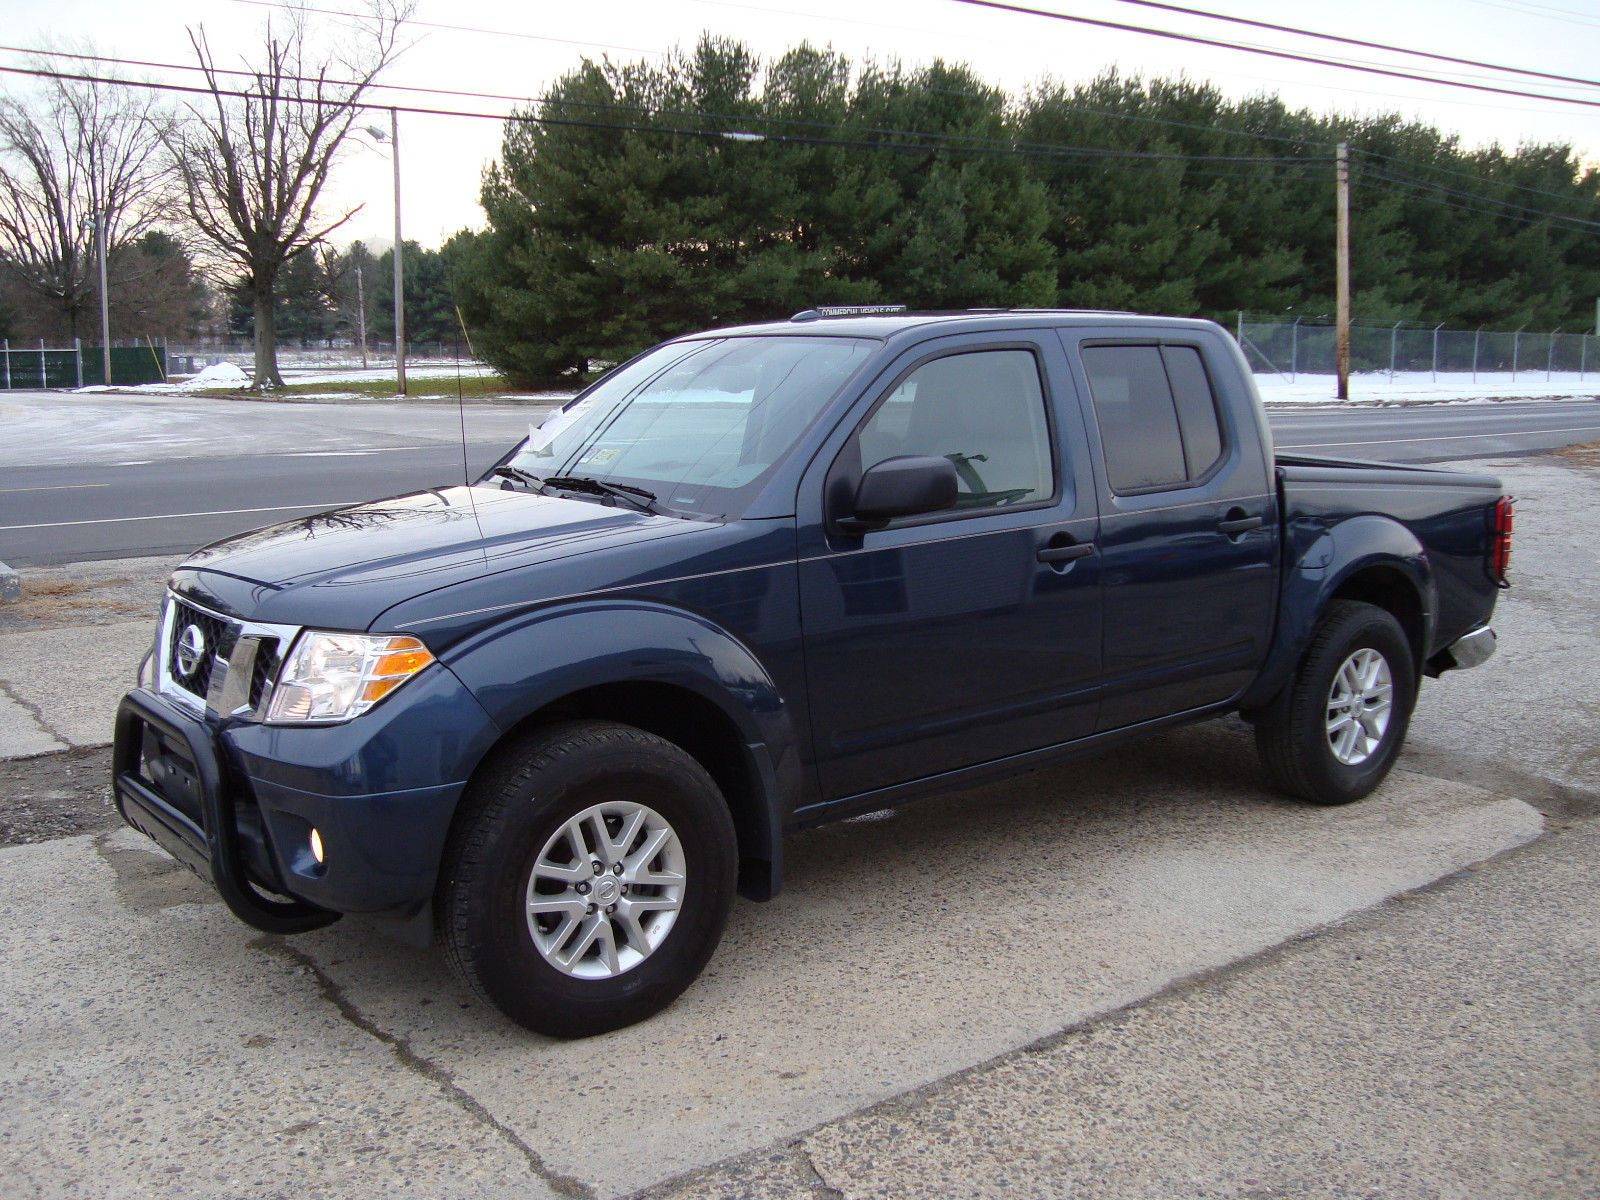 2016 Nissan Frontier Crew Cab SV 4x4 Salvage Rebuildable Repairable